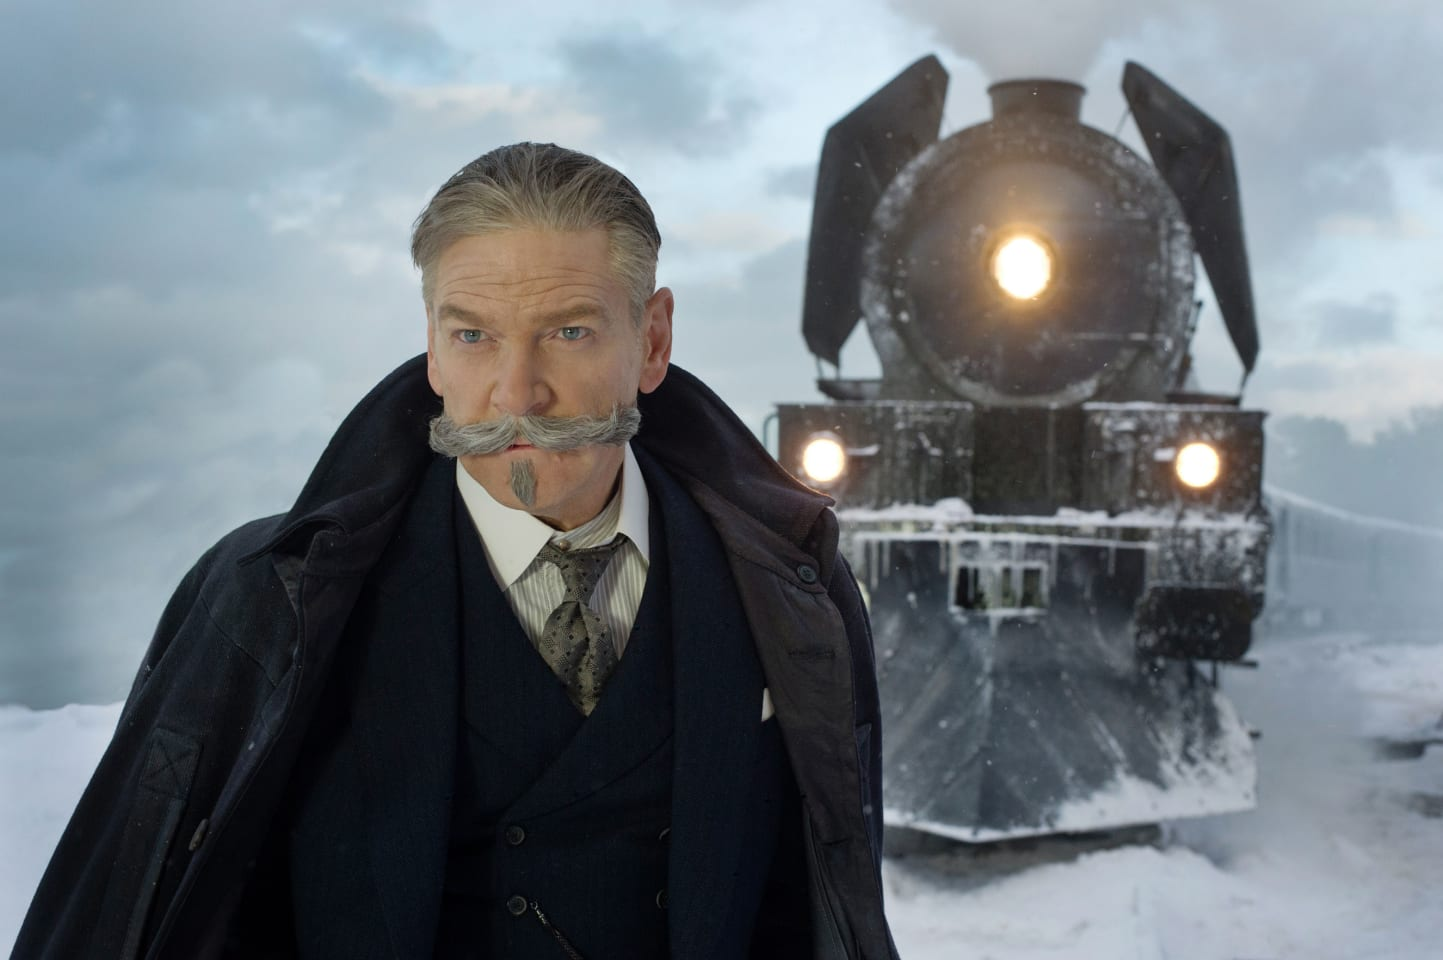 Galaxy theatres green valley cinema henderson nv reviews - Murder On The Orient Express